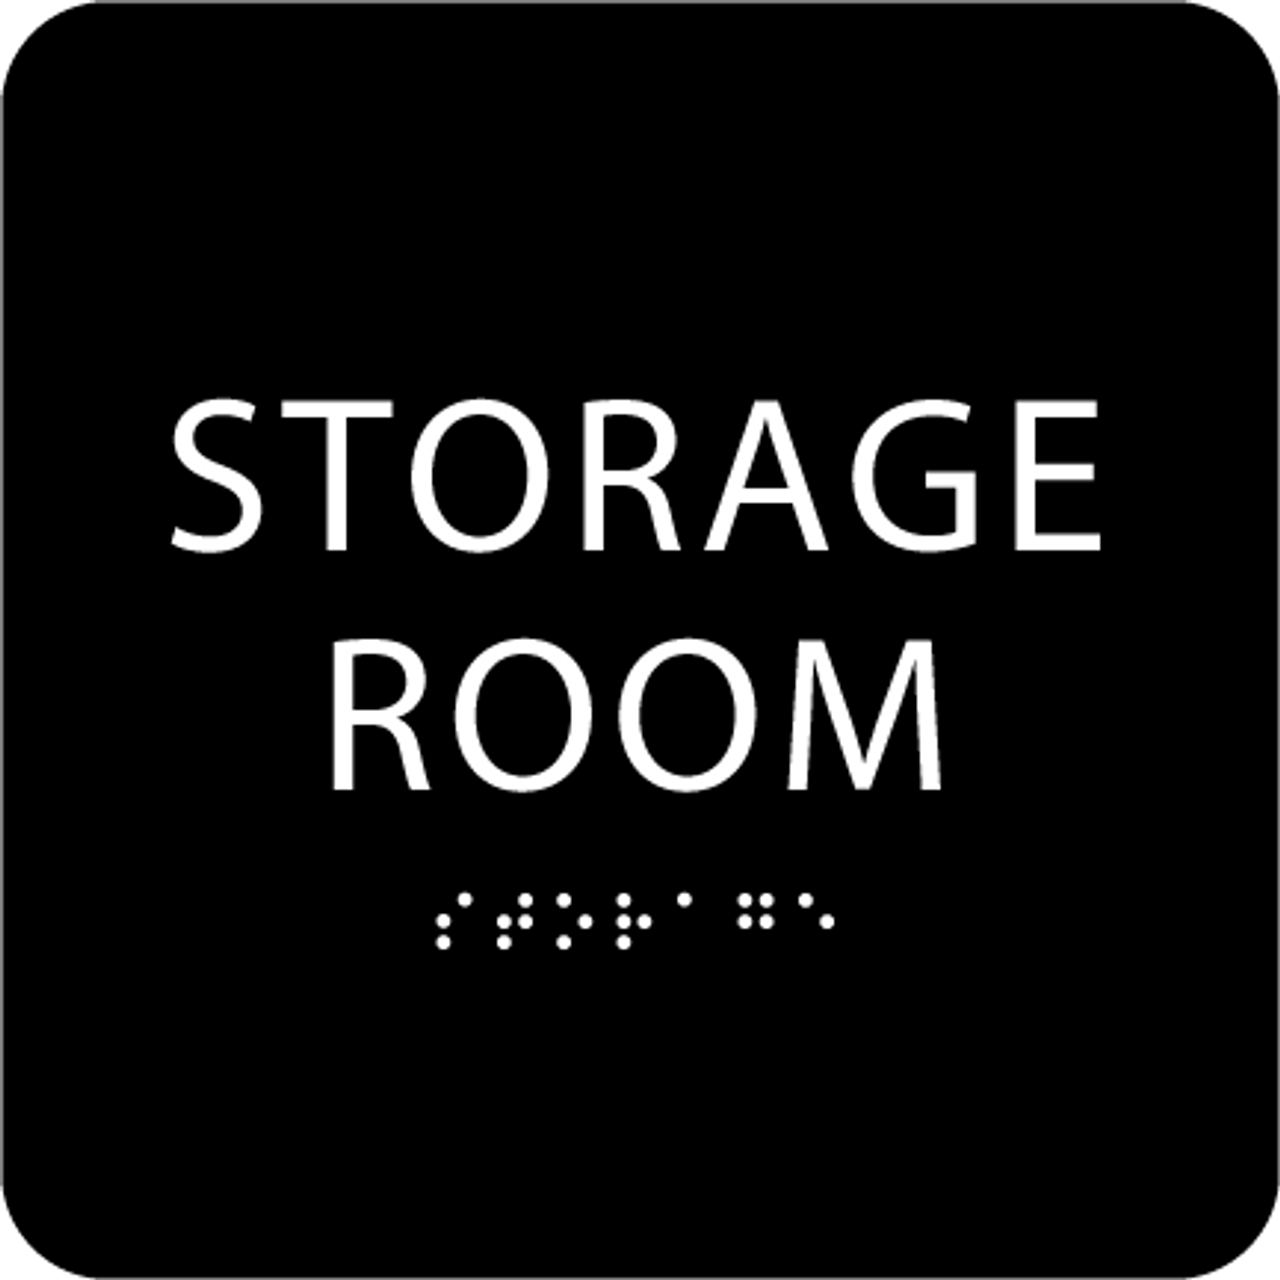 Black Tactile Storage Room Sign